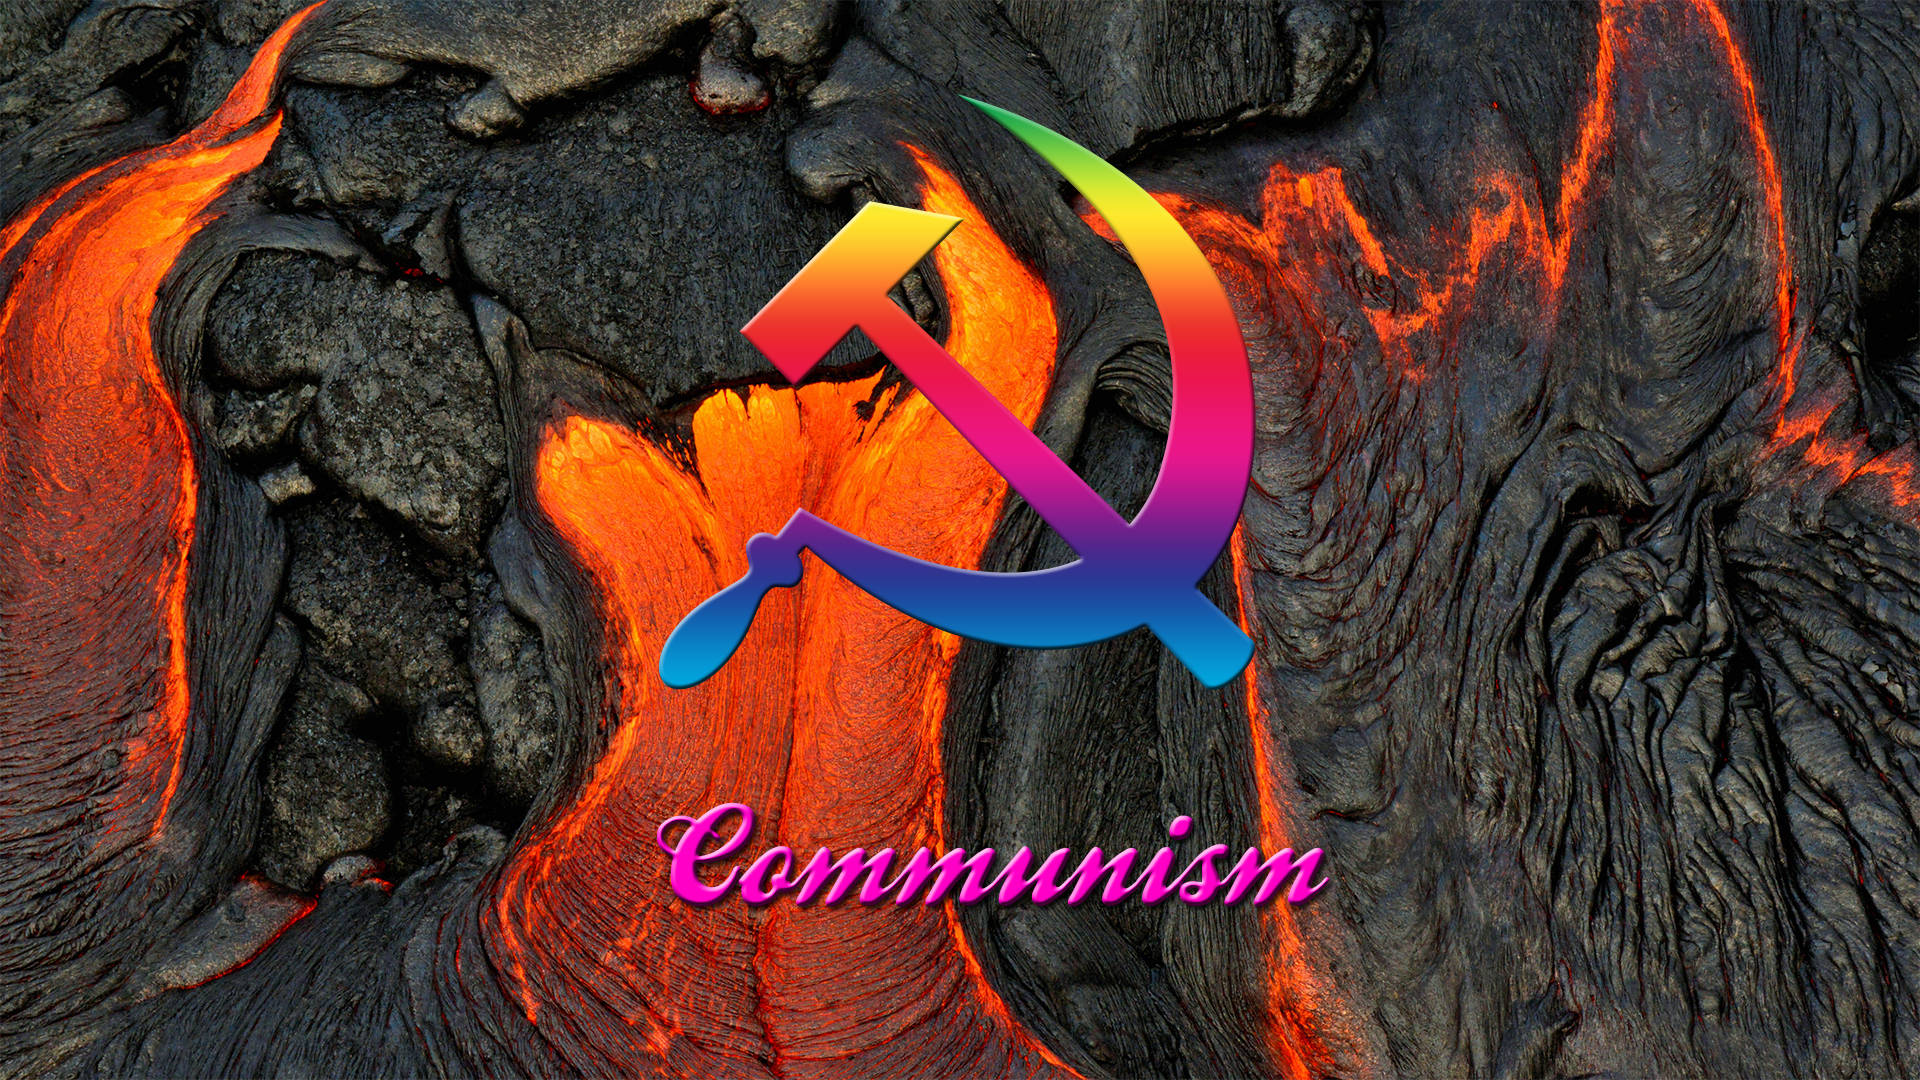 Communism-1920x1080-OC-Need-iPhone-S-Plus-Background-for-IPhoneSPlus-Follow-wallpaper-wp3404073